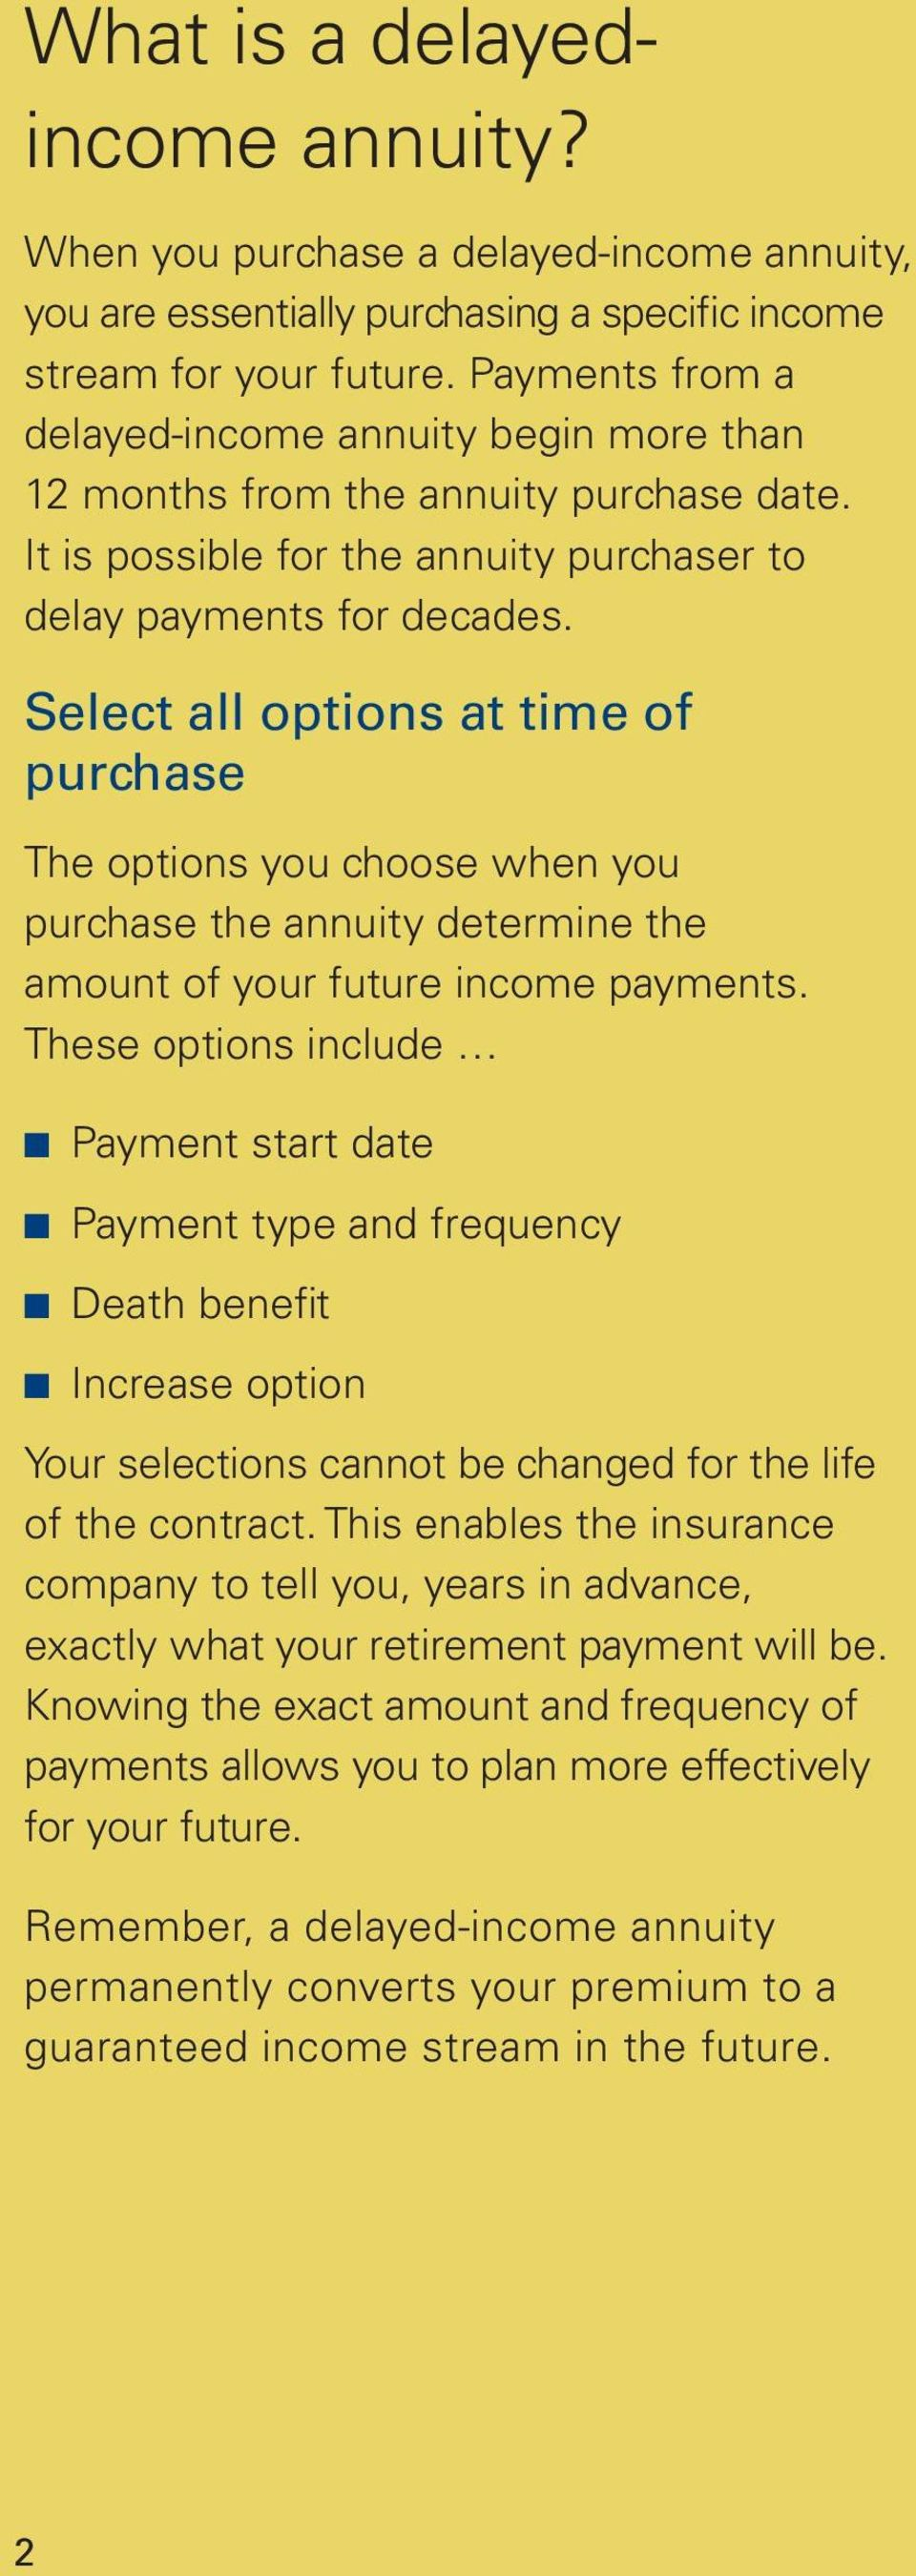 Select all options at time of purchase The options you choose when you purchase the annuity determine the amount of your future income payments.